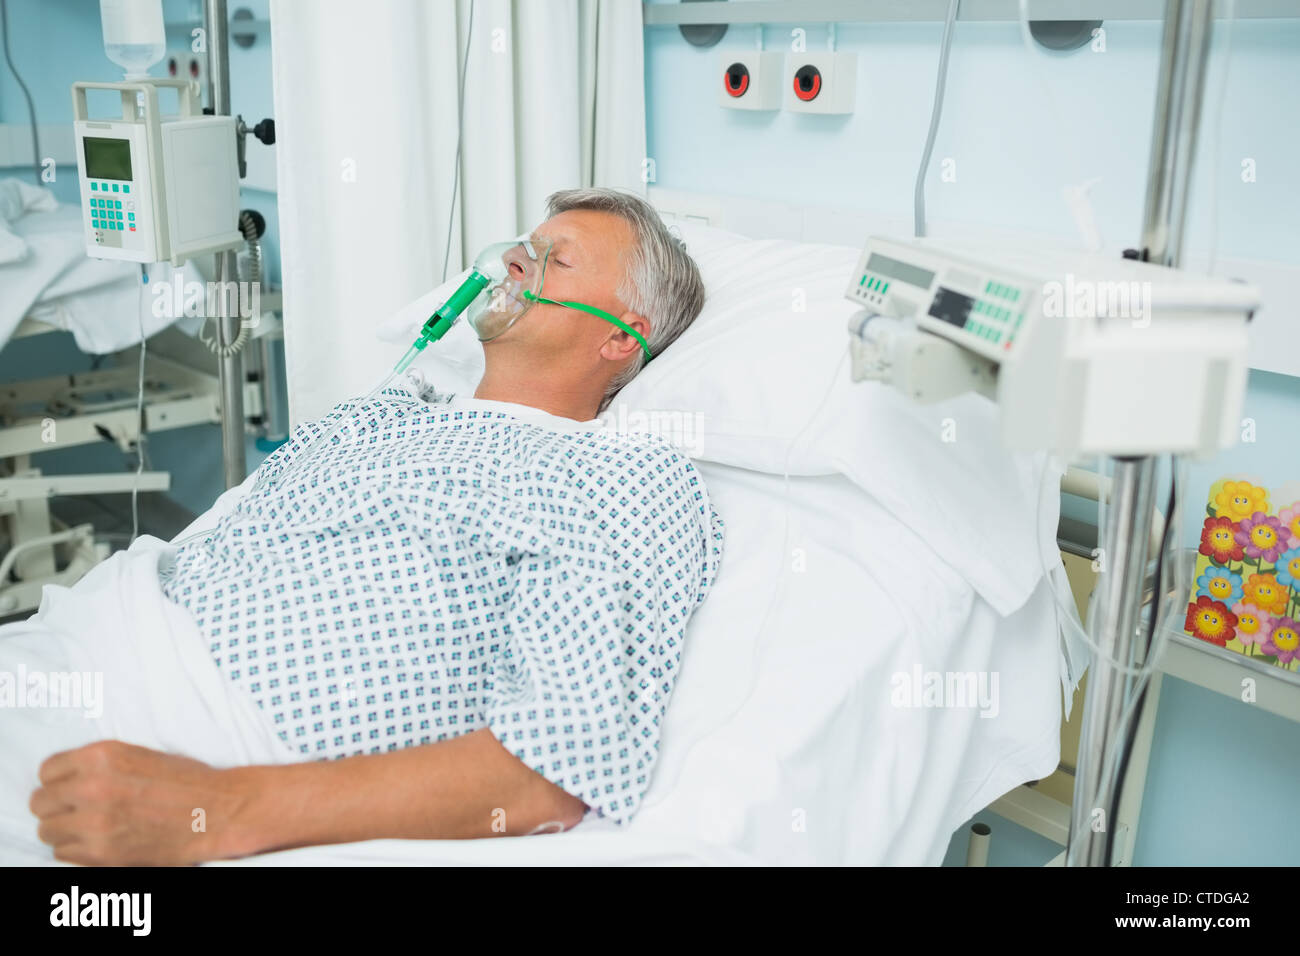 Unconscious patient lying on a bed with an oxygen mask on